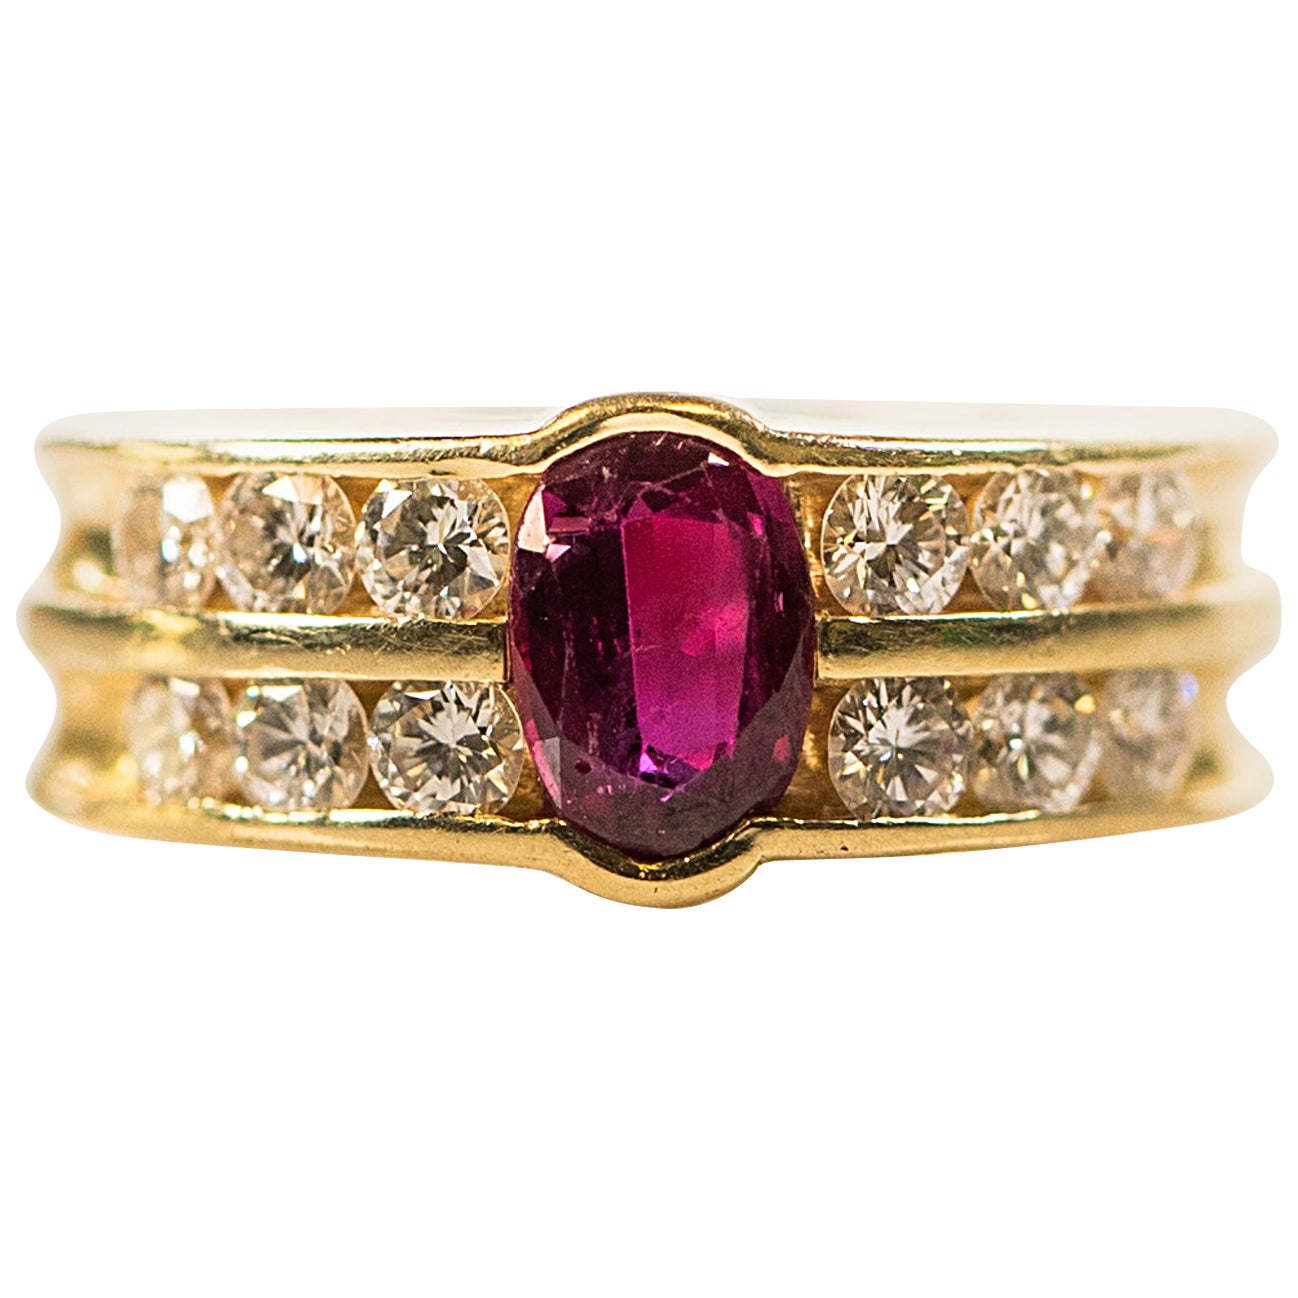 1950s GAL Certified 0.75 Carat Oval Ruby and Diamond 14K Gold Ring